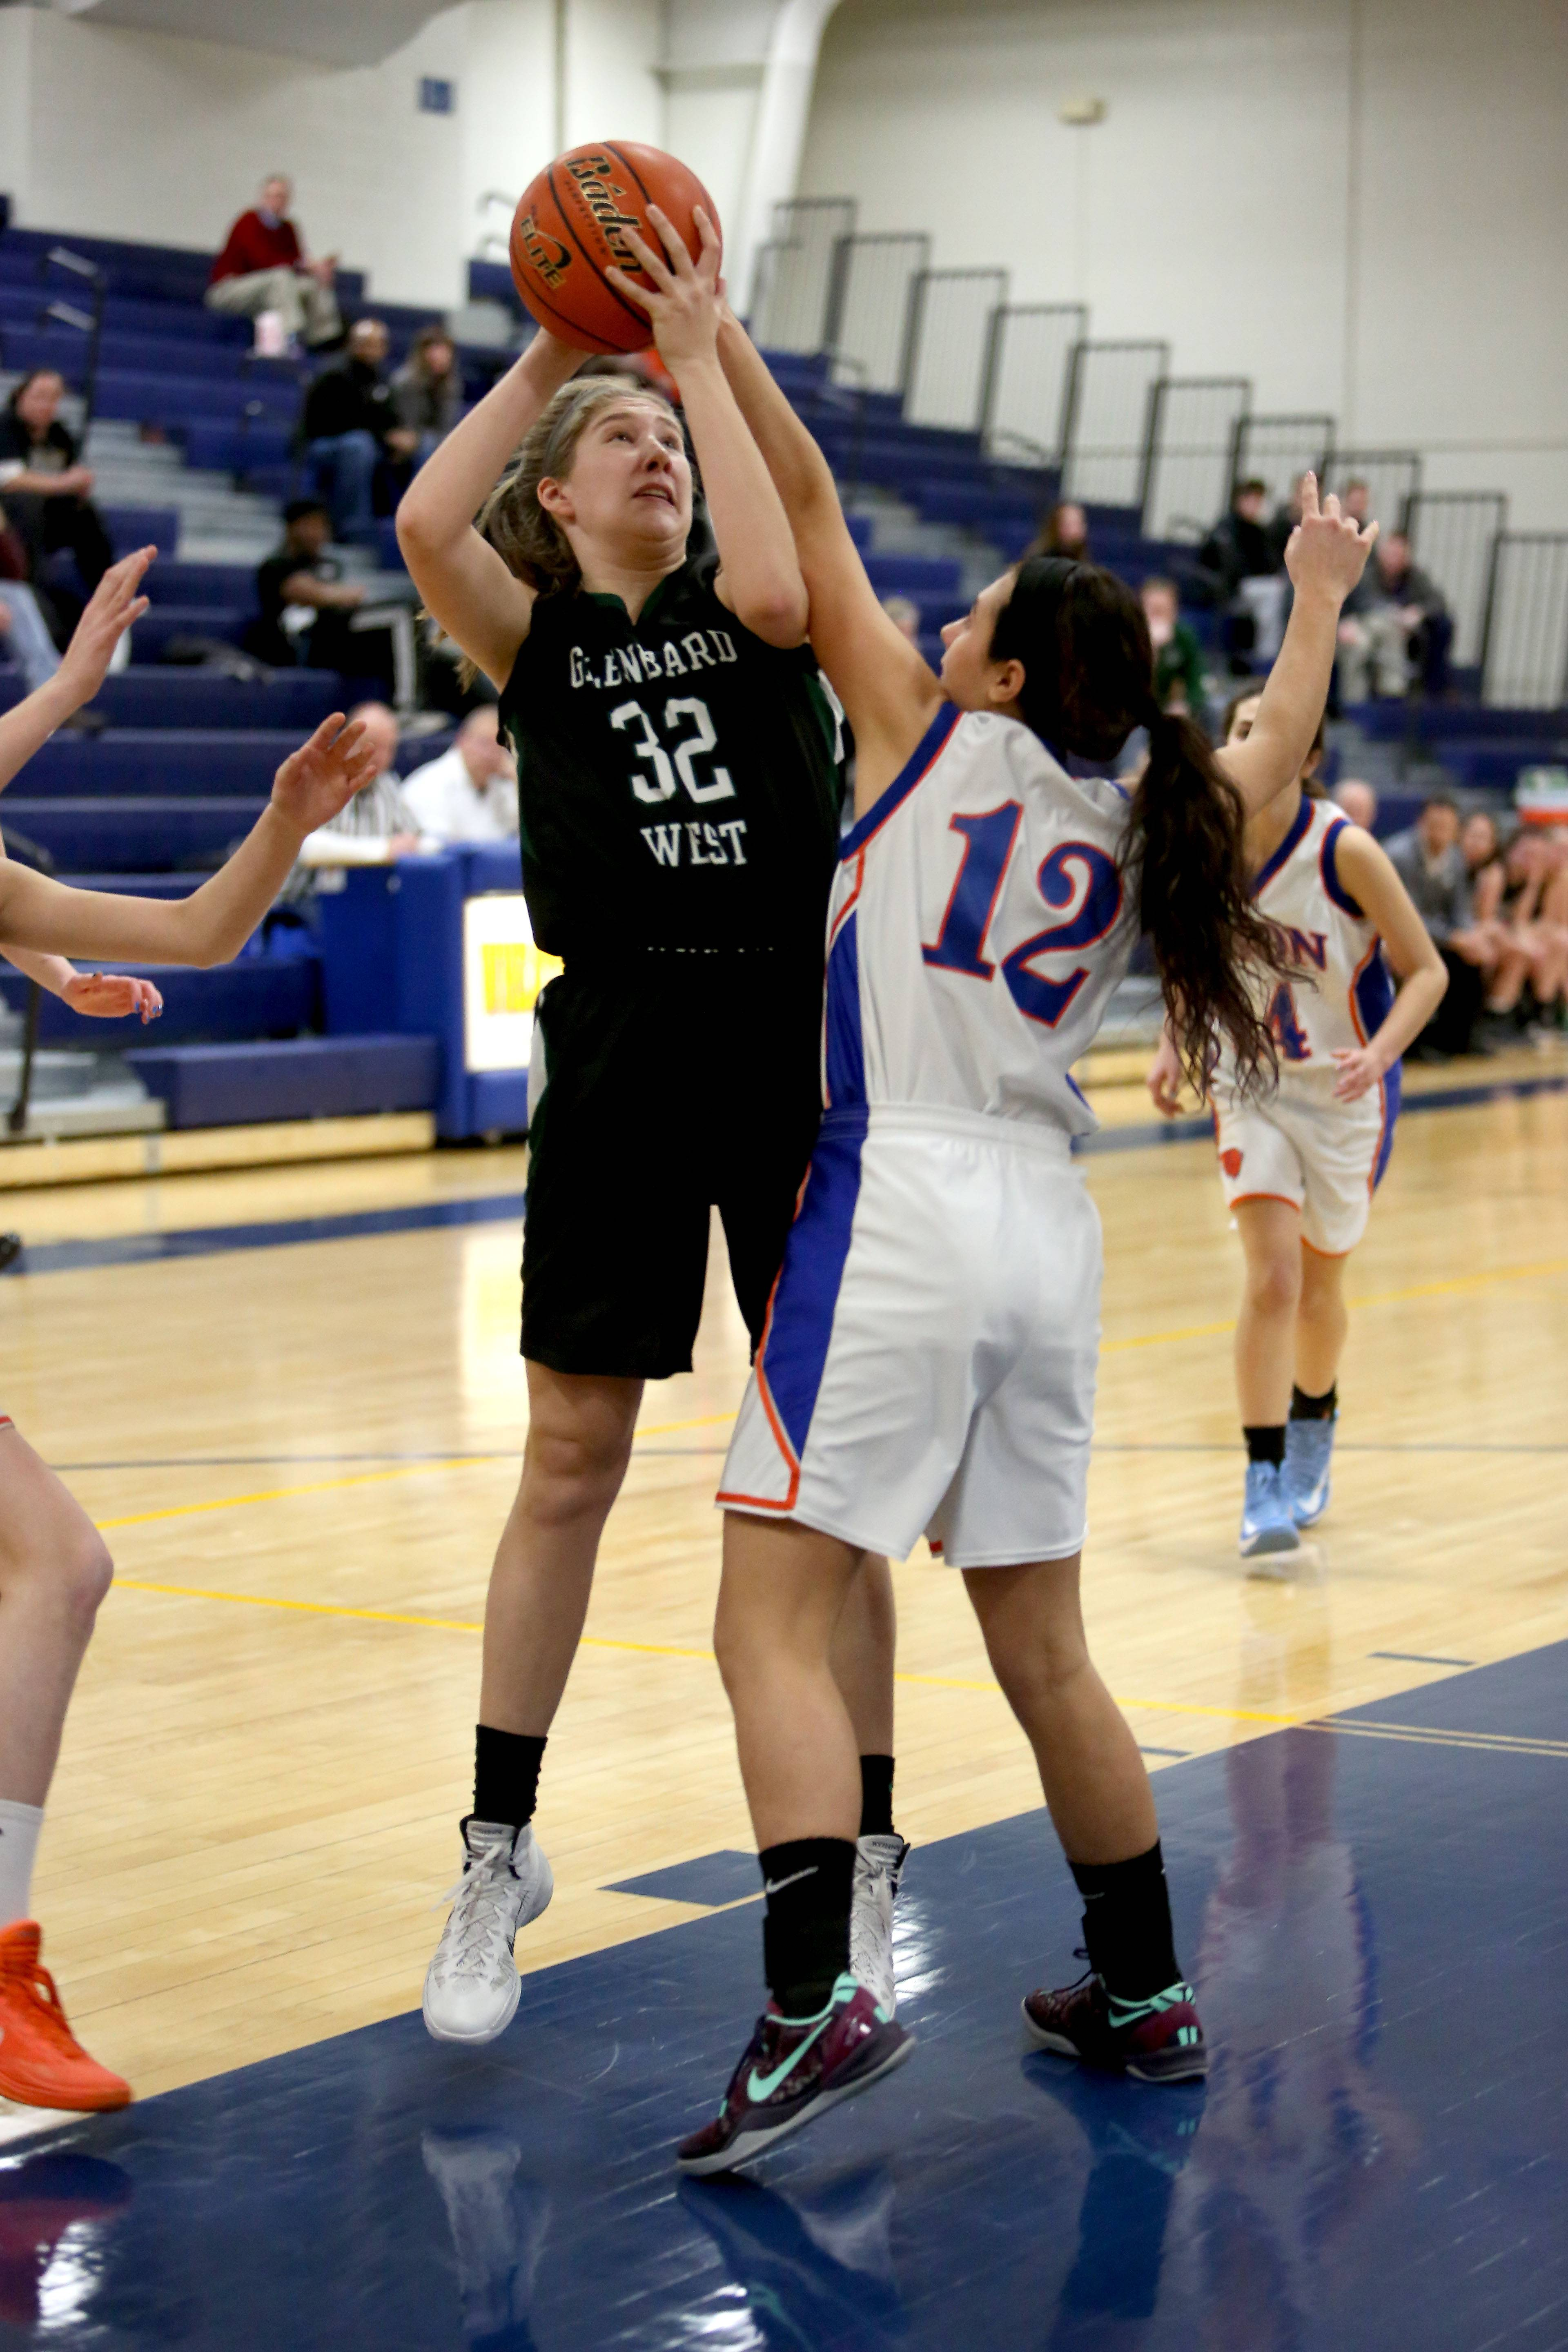 Ellen Daniels of Glenbard West, left, looks to shoot the ball as Rachael Leschewski of Fenton, right, defends in regional quarterfinal girls basketball at Wheaton North on Monday.